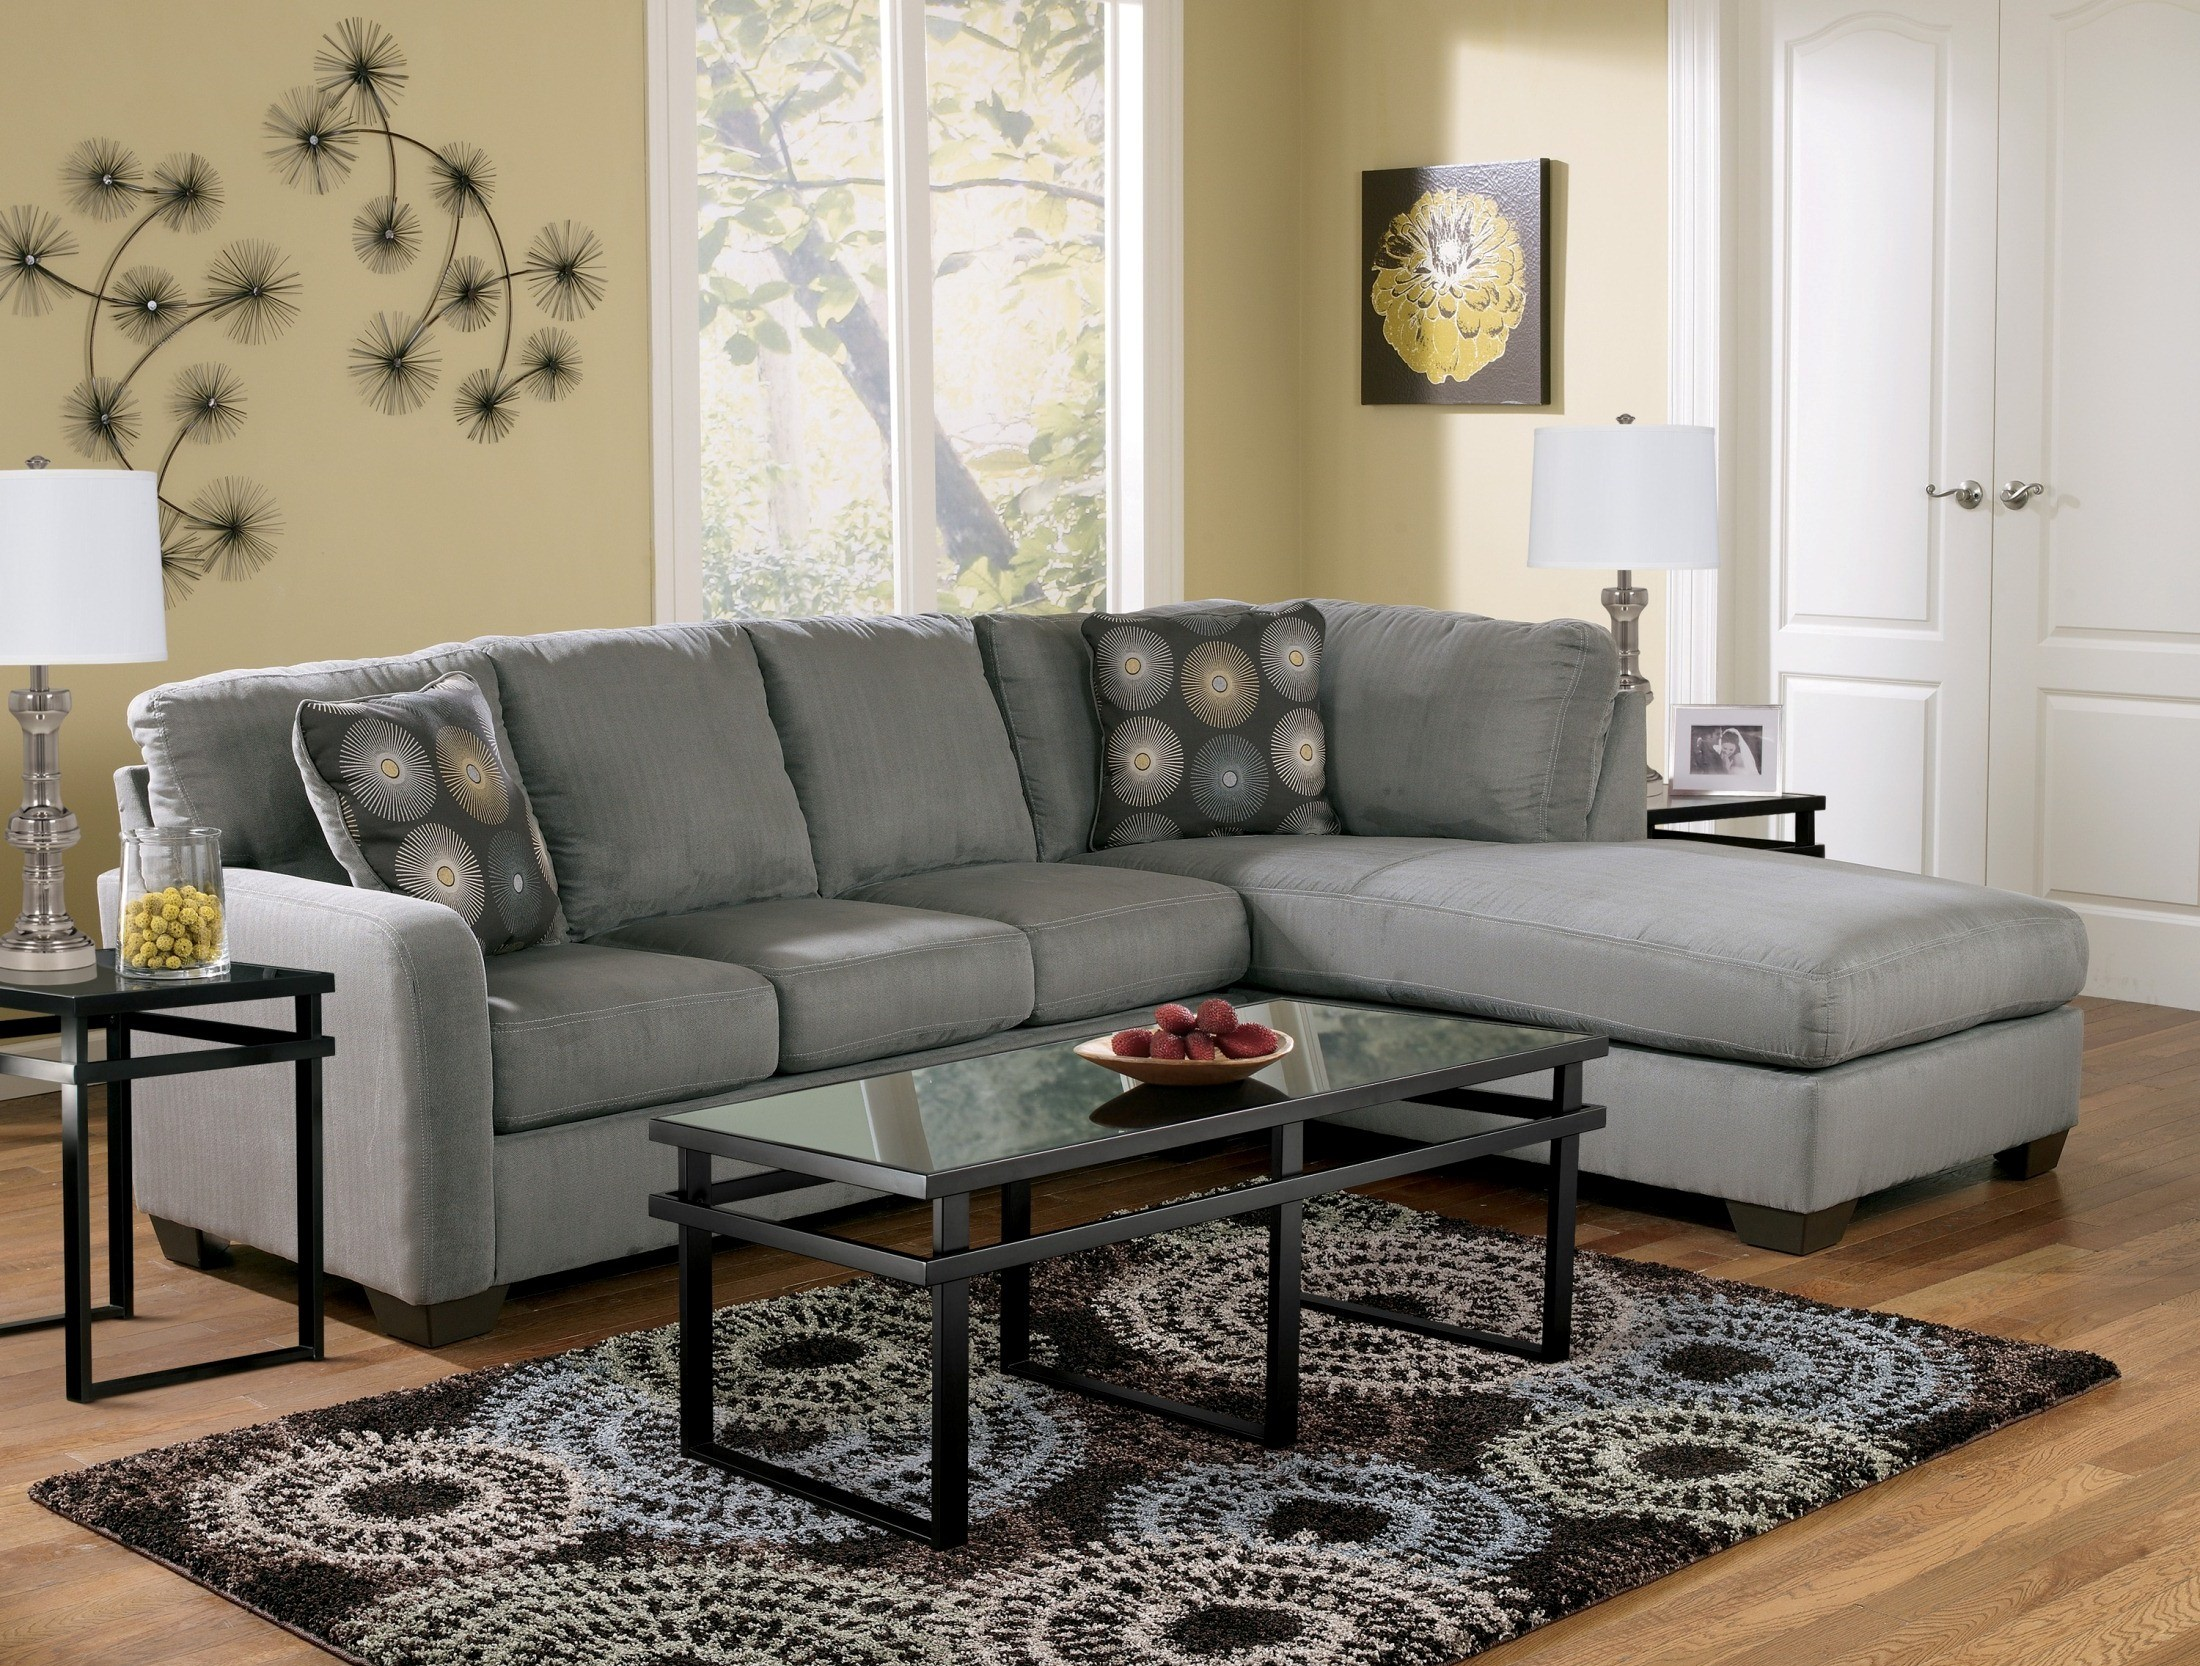 Zella Charcoal Right Arm Facing Sectional From Ashley